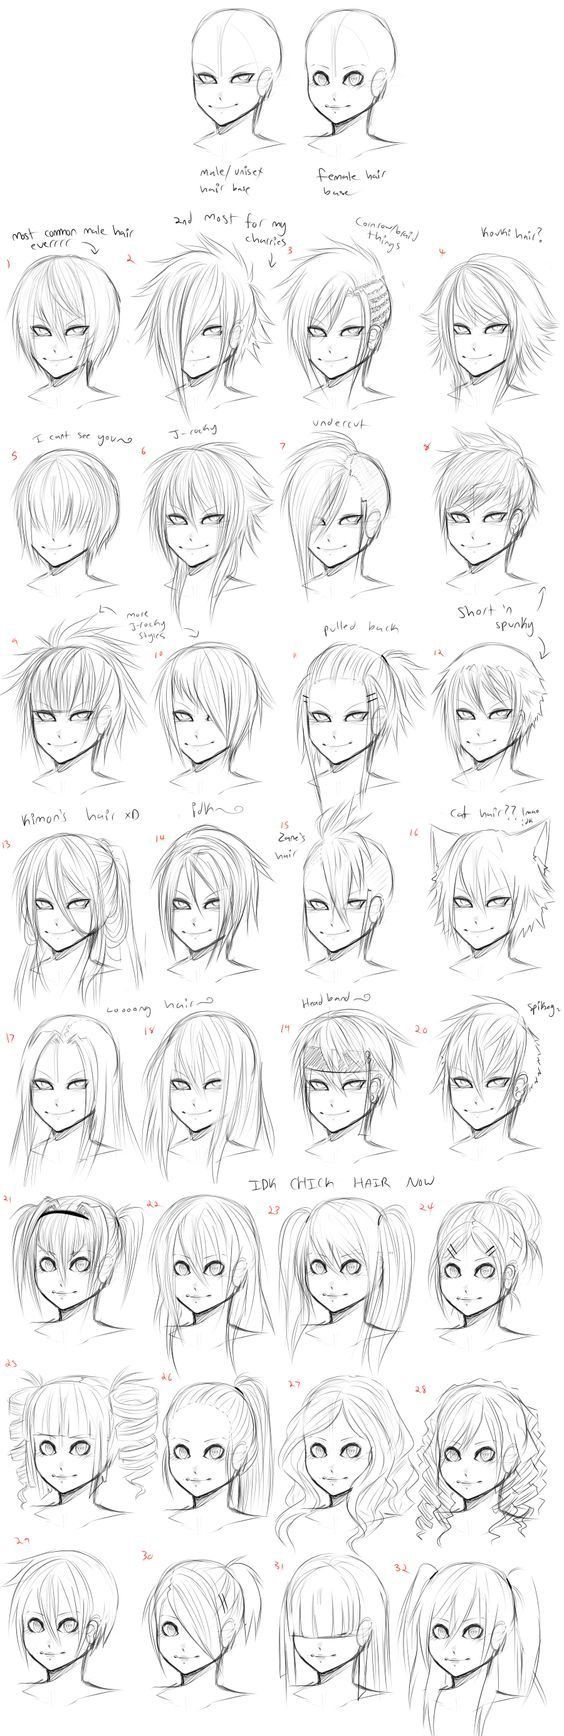 Awesome Short Hairstyles Quick And Easy To Draw Don T Need Any Rank To Draw These Manga Hair Anime Drawings How To Draw Hair